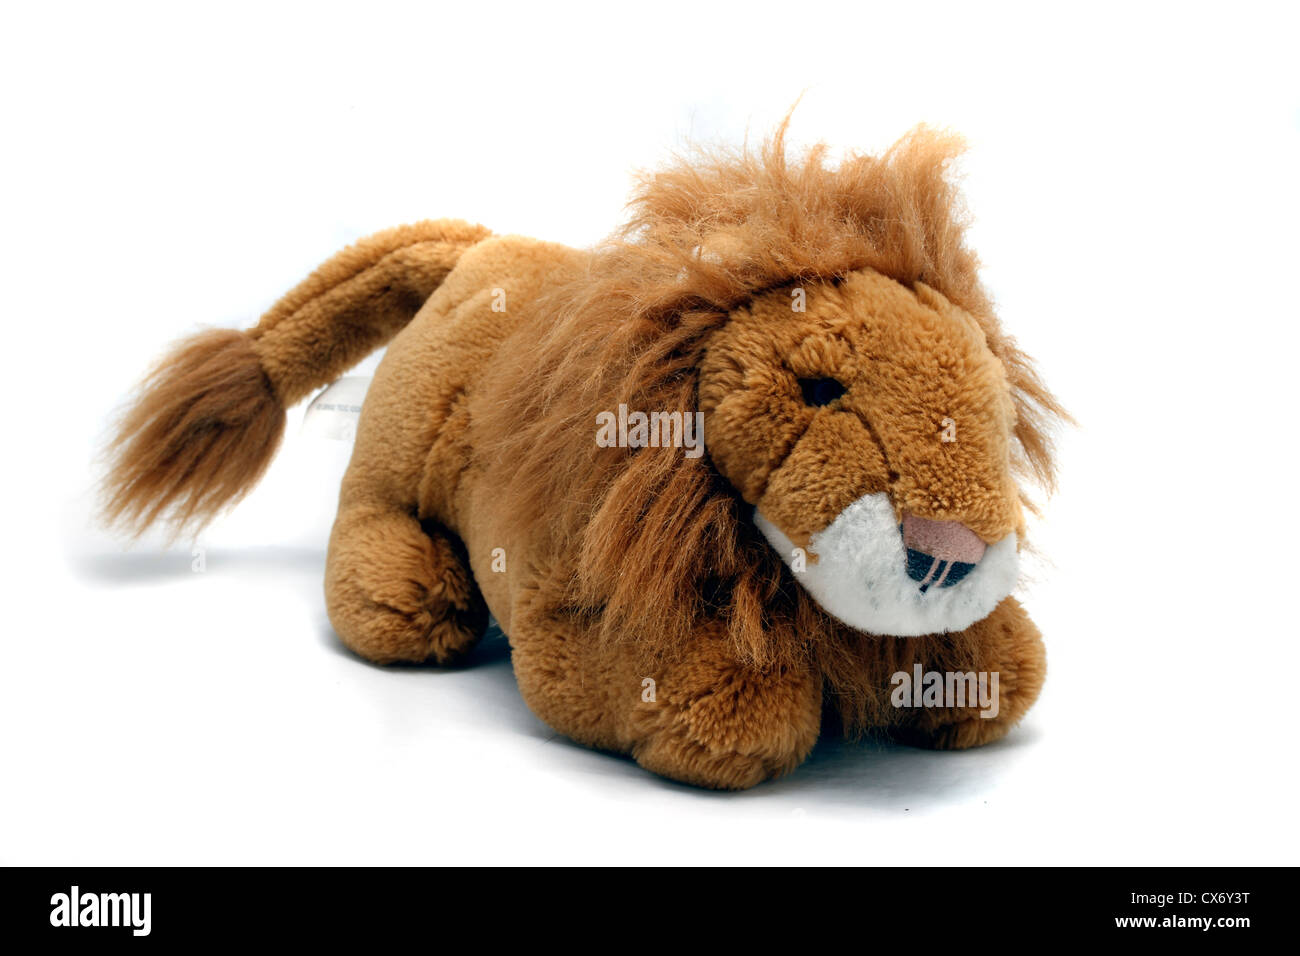 A-One Plush Toys lion. Cuddly toy approximately 45 cm from tip of nose to tip of tail - Stock Image